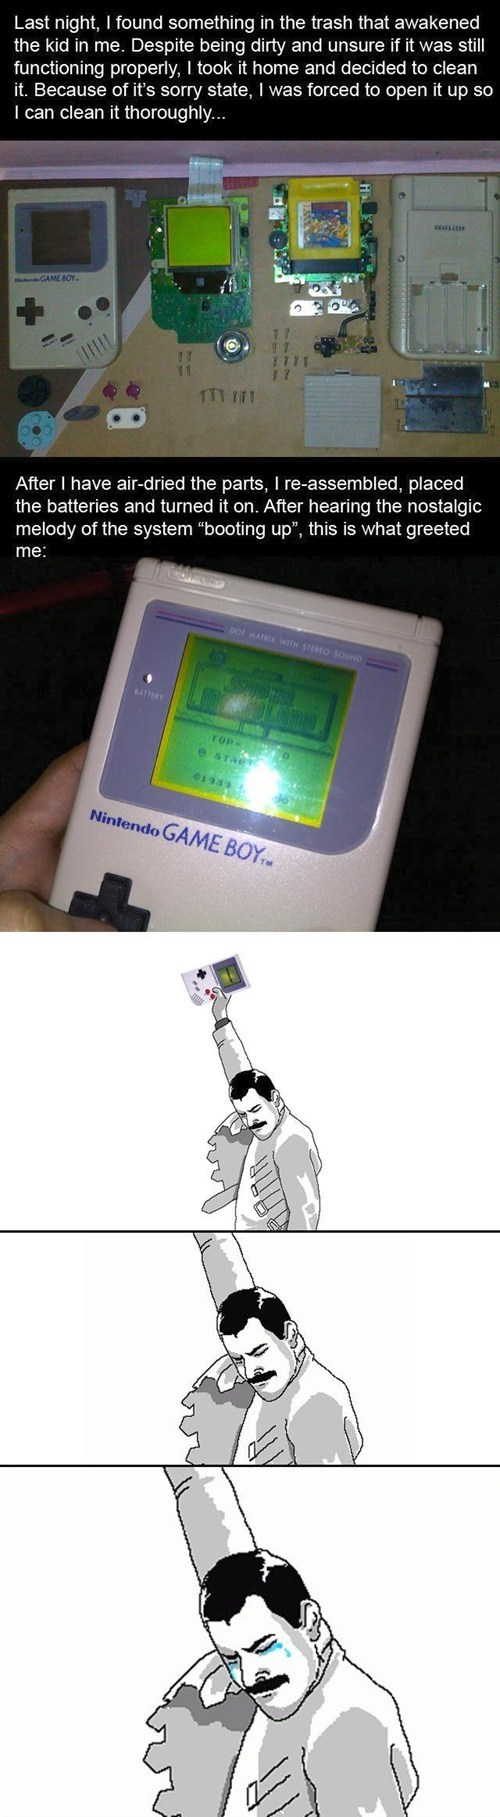 faith in humanity restored,game boy,fixed,nintendo